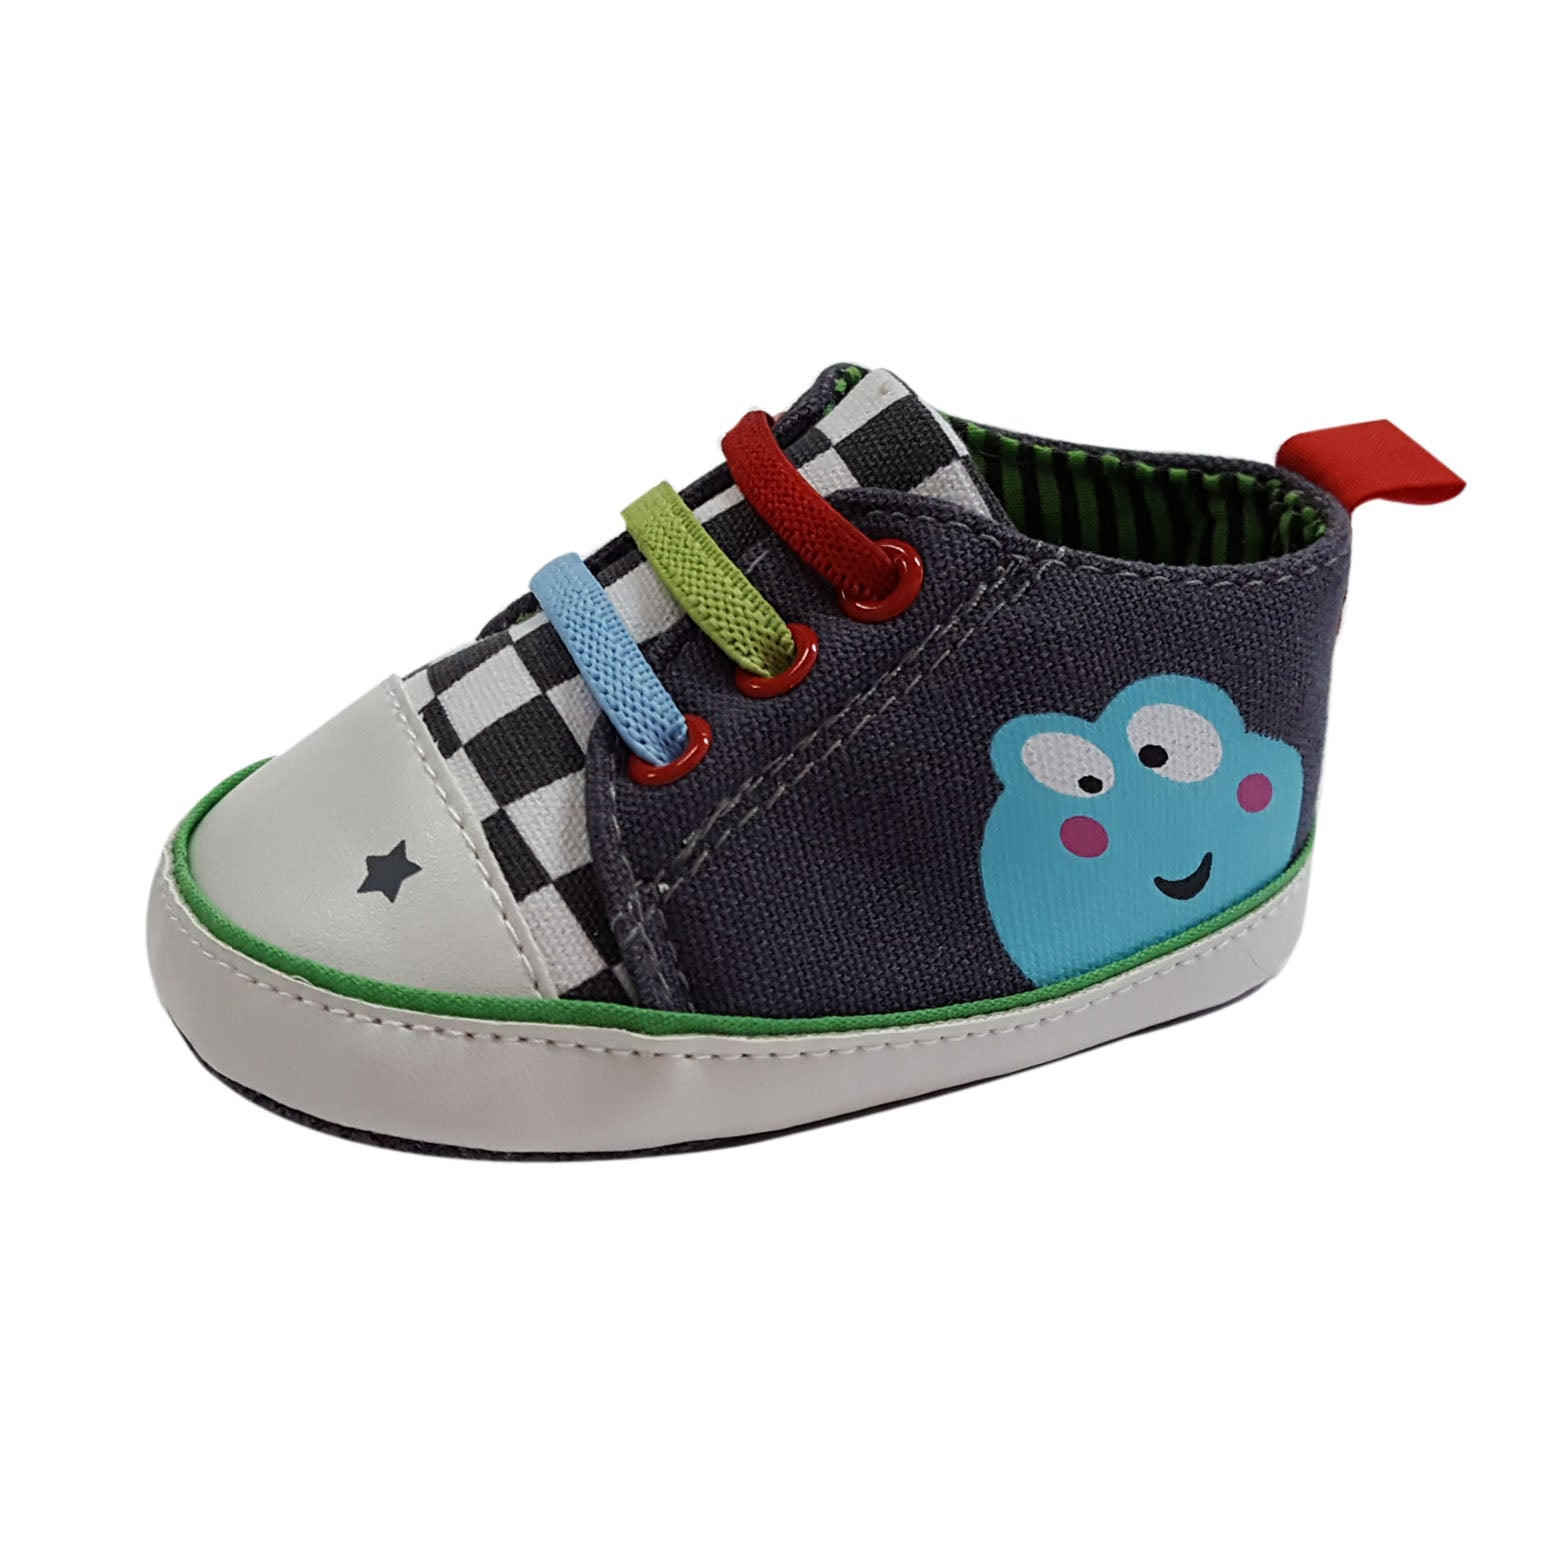 Jensen (Pre-Walker Shoes) - B108 Frog